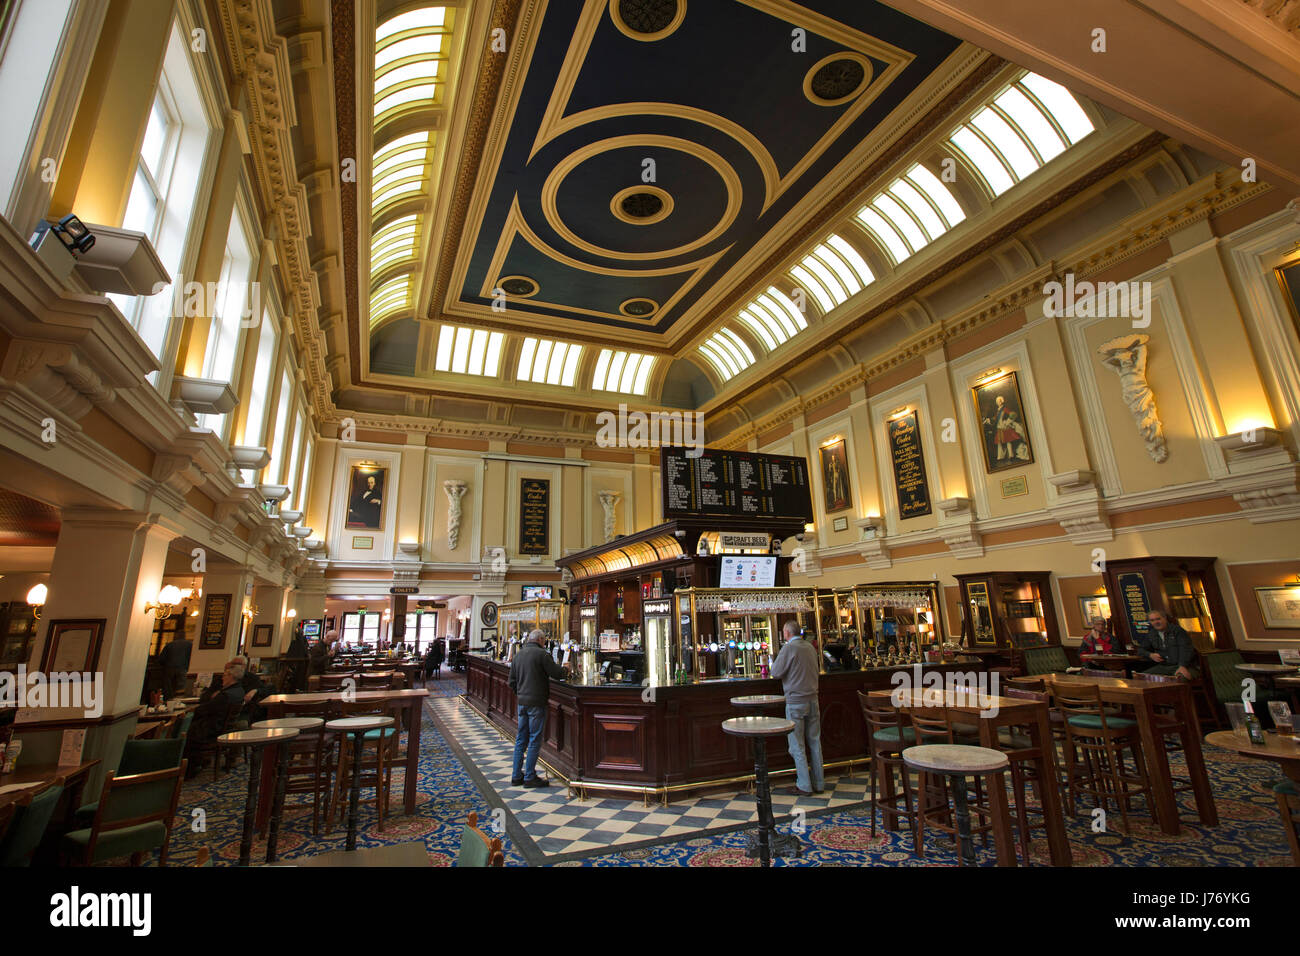 UK, England, Derbyshire, Derby, Iron Gate, Standing Order pub interior, in former Crompton & Evans Union Bank - Stock Image